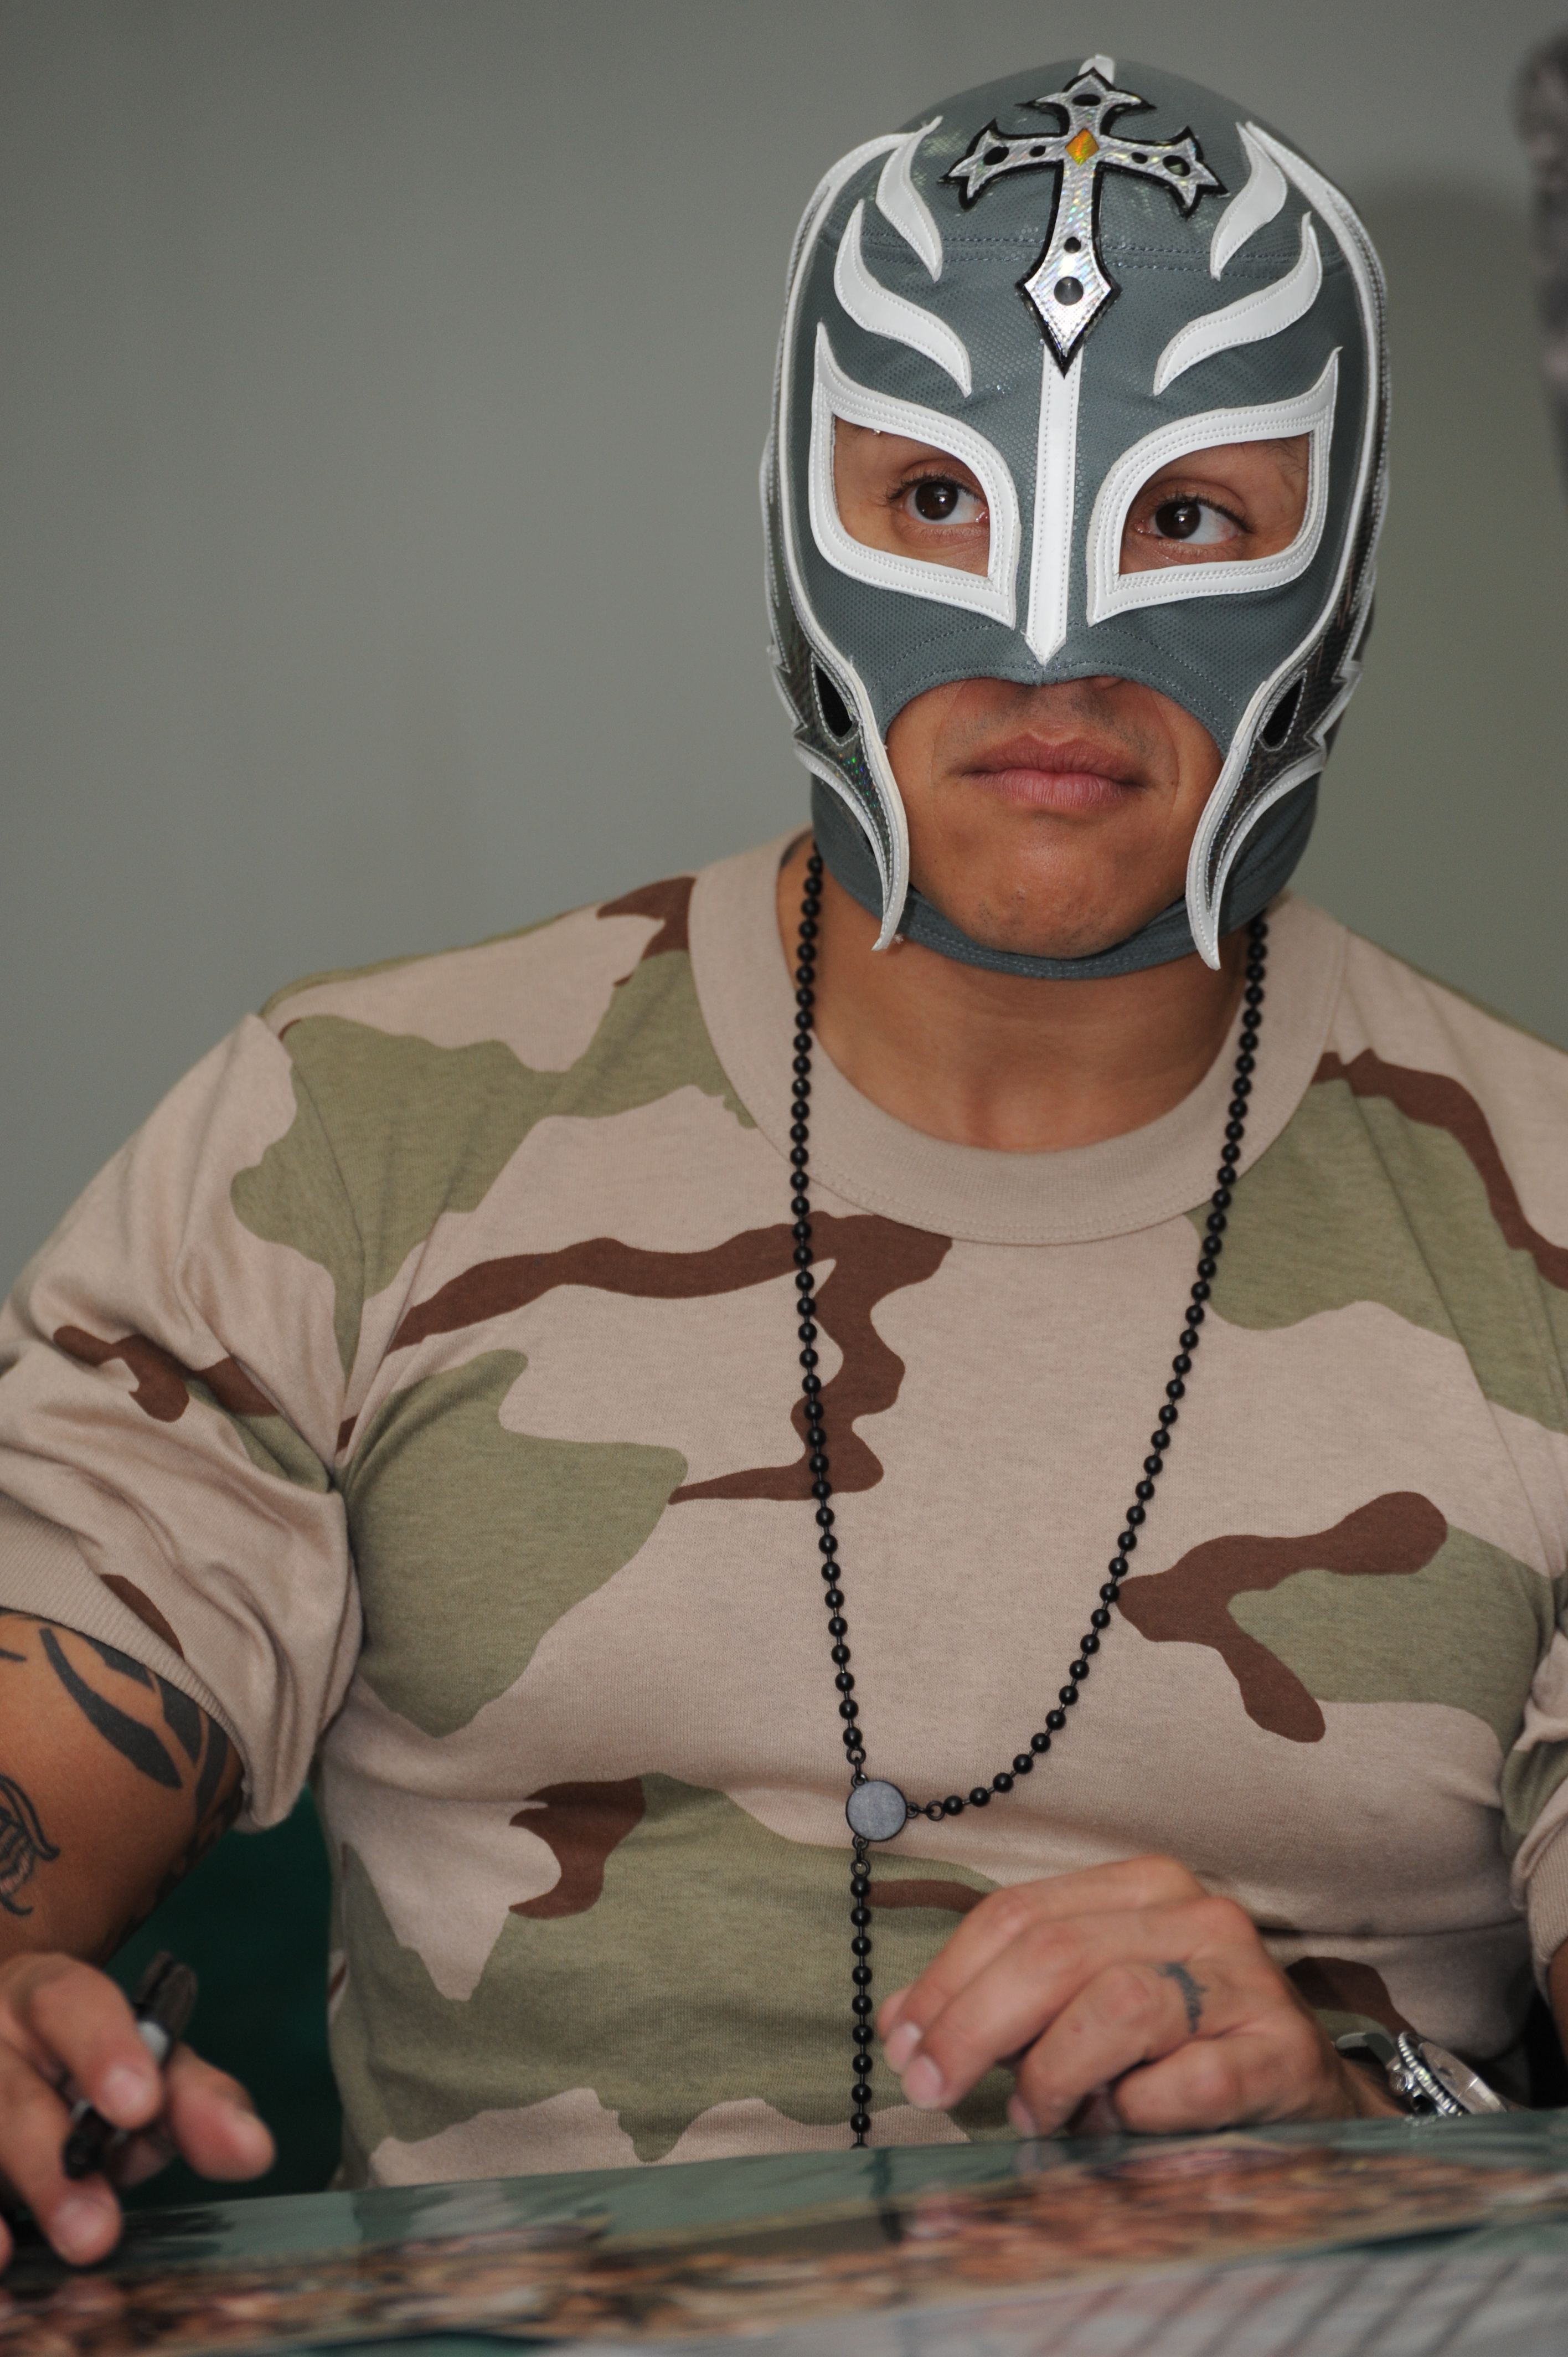 Unmasked 15 Things You Didnt About Rey Mysterio in addition Rey Mysterio Wwe Pictures as well 3791626511 furthermore 319 Rey Mysterio Sta Per Firmare Il Rinnovo also Wwe Rey Mysterio Unmasked Pictures. on oscar gutierrez unmasked